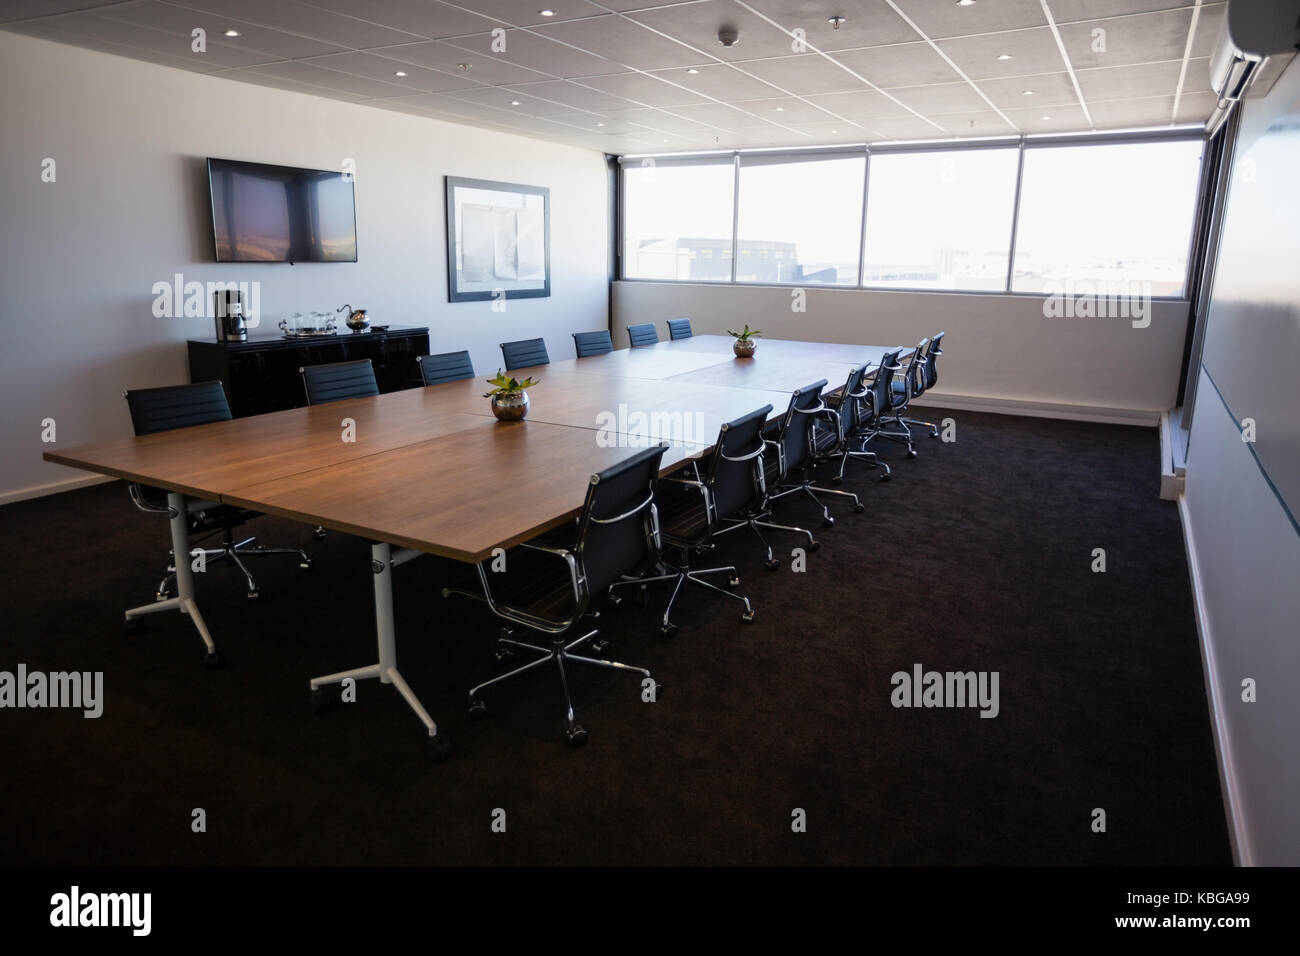 modern interior office stock. Interior Of Empty Modern Meeting Room At Creative Office Stock D